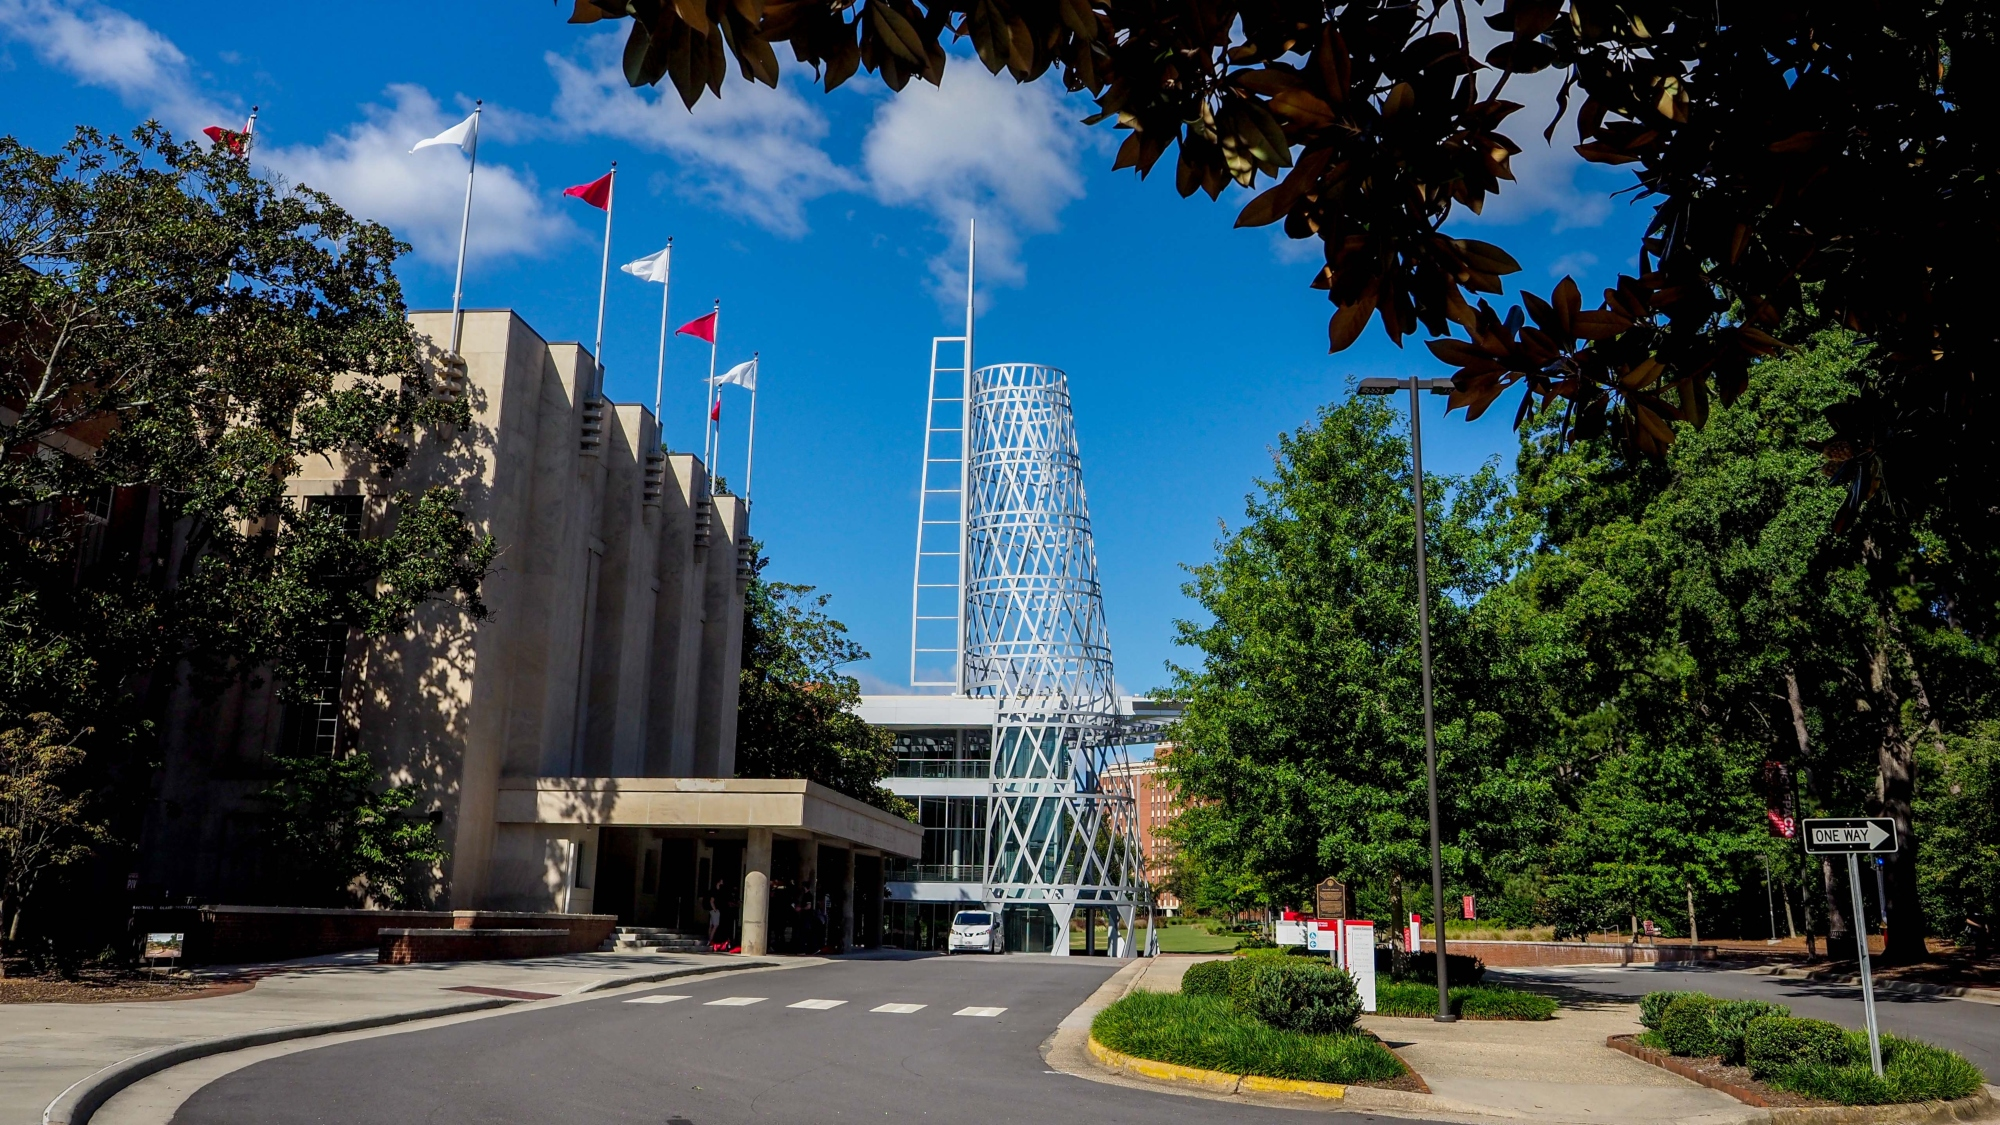 NCState University Resources